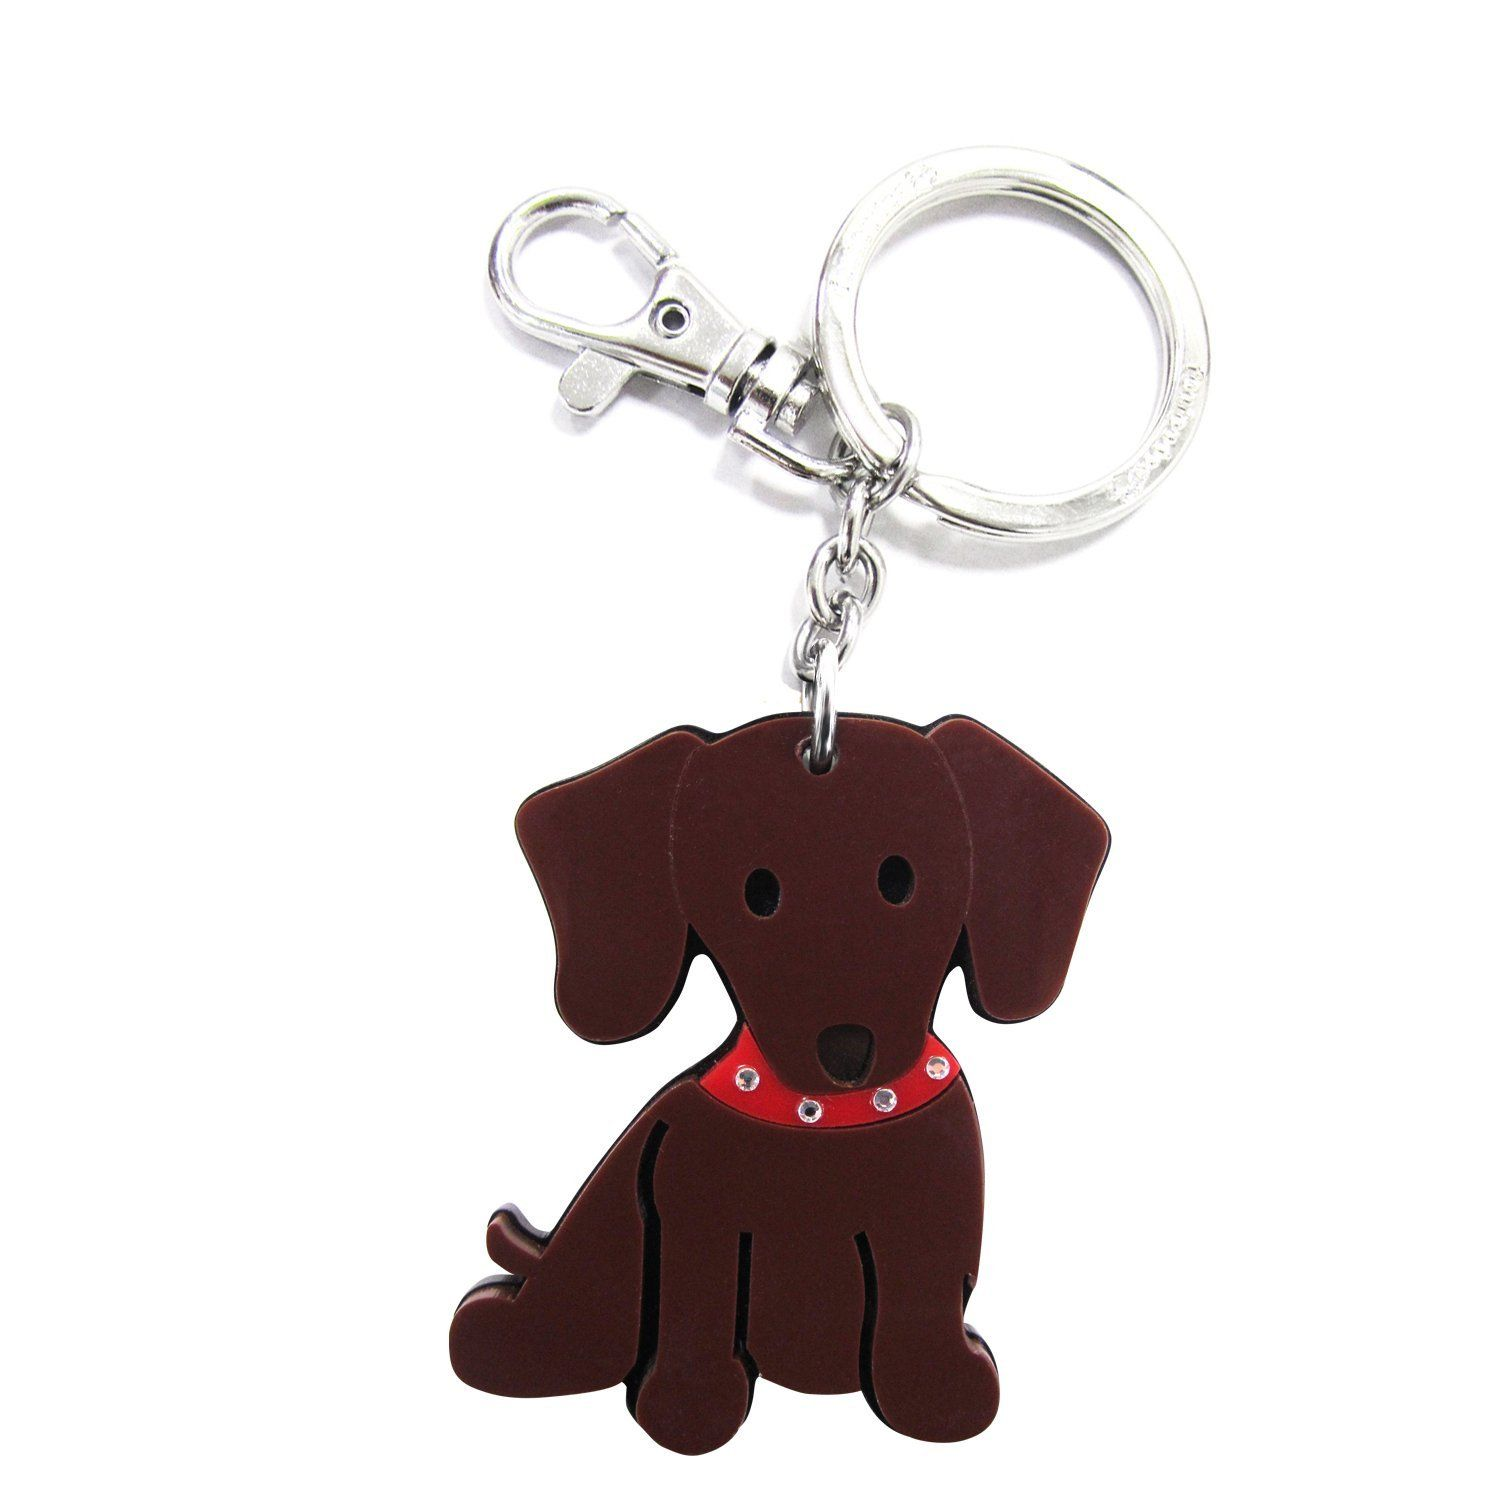 Love Your Breed Acrylic Keychain, Dachshund Read more